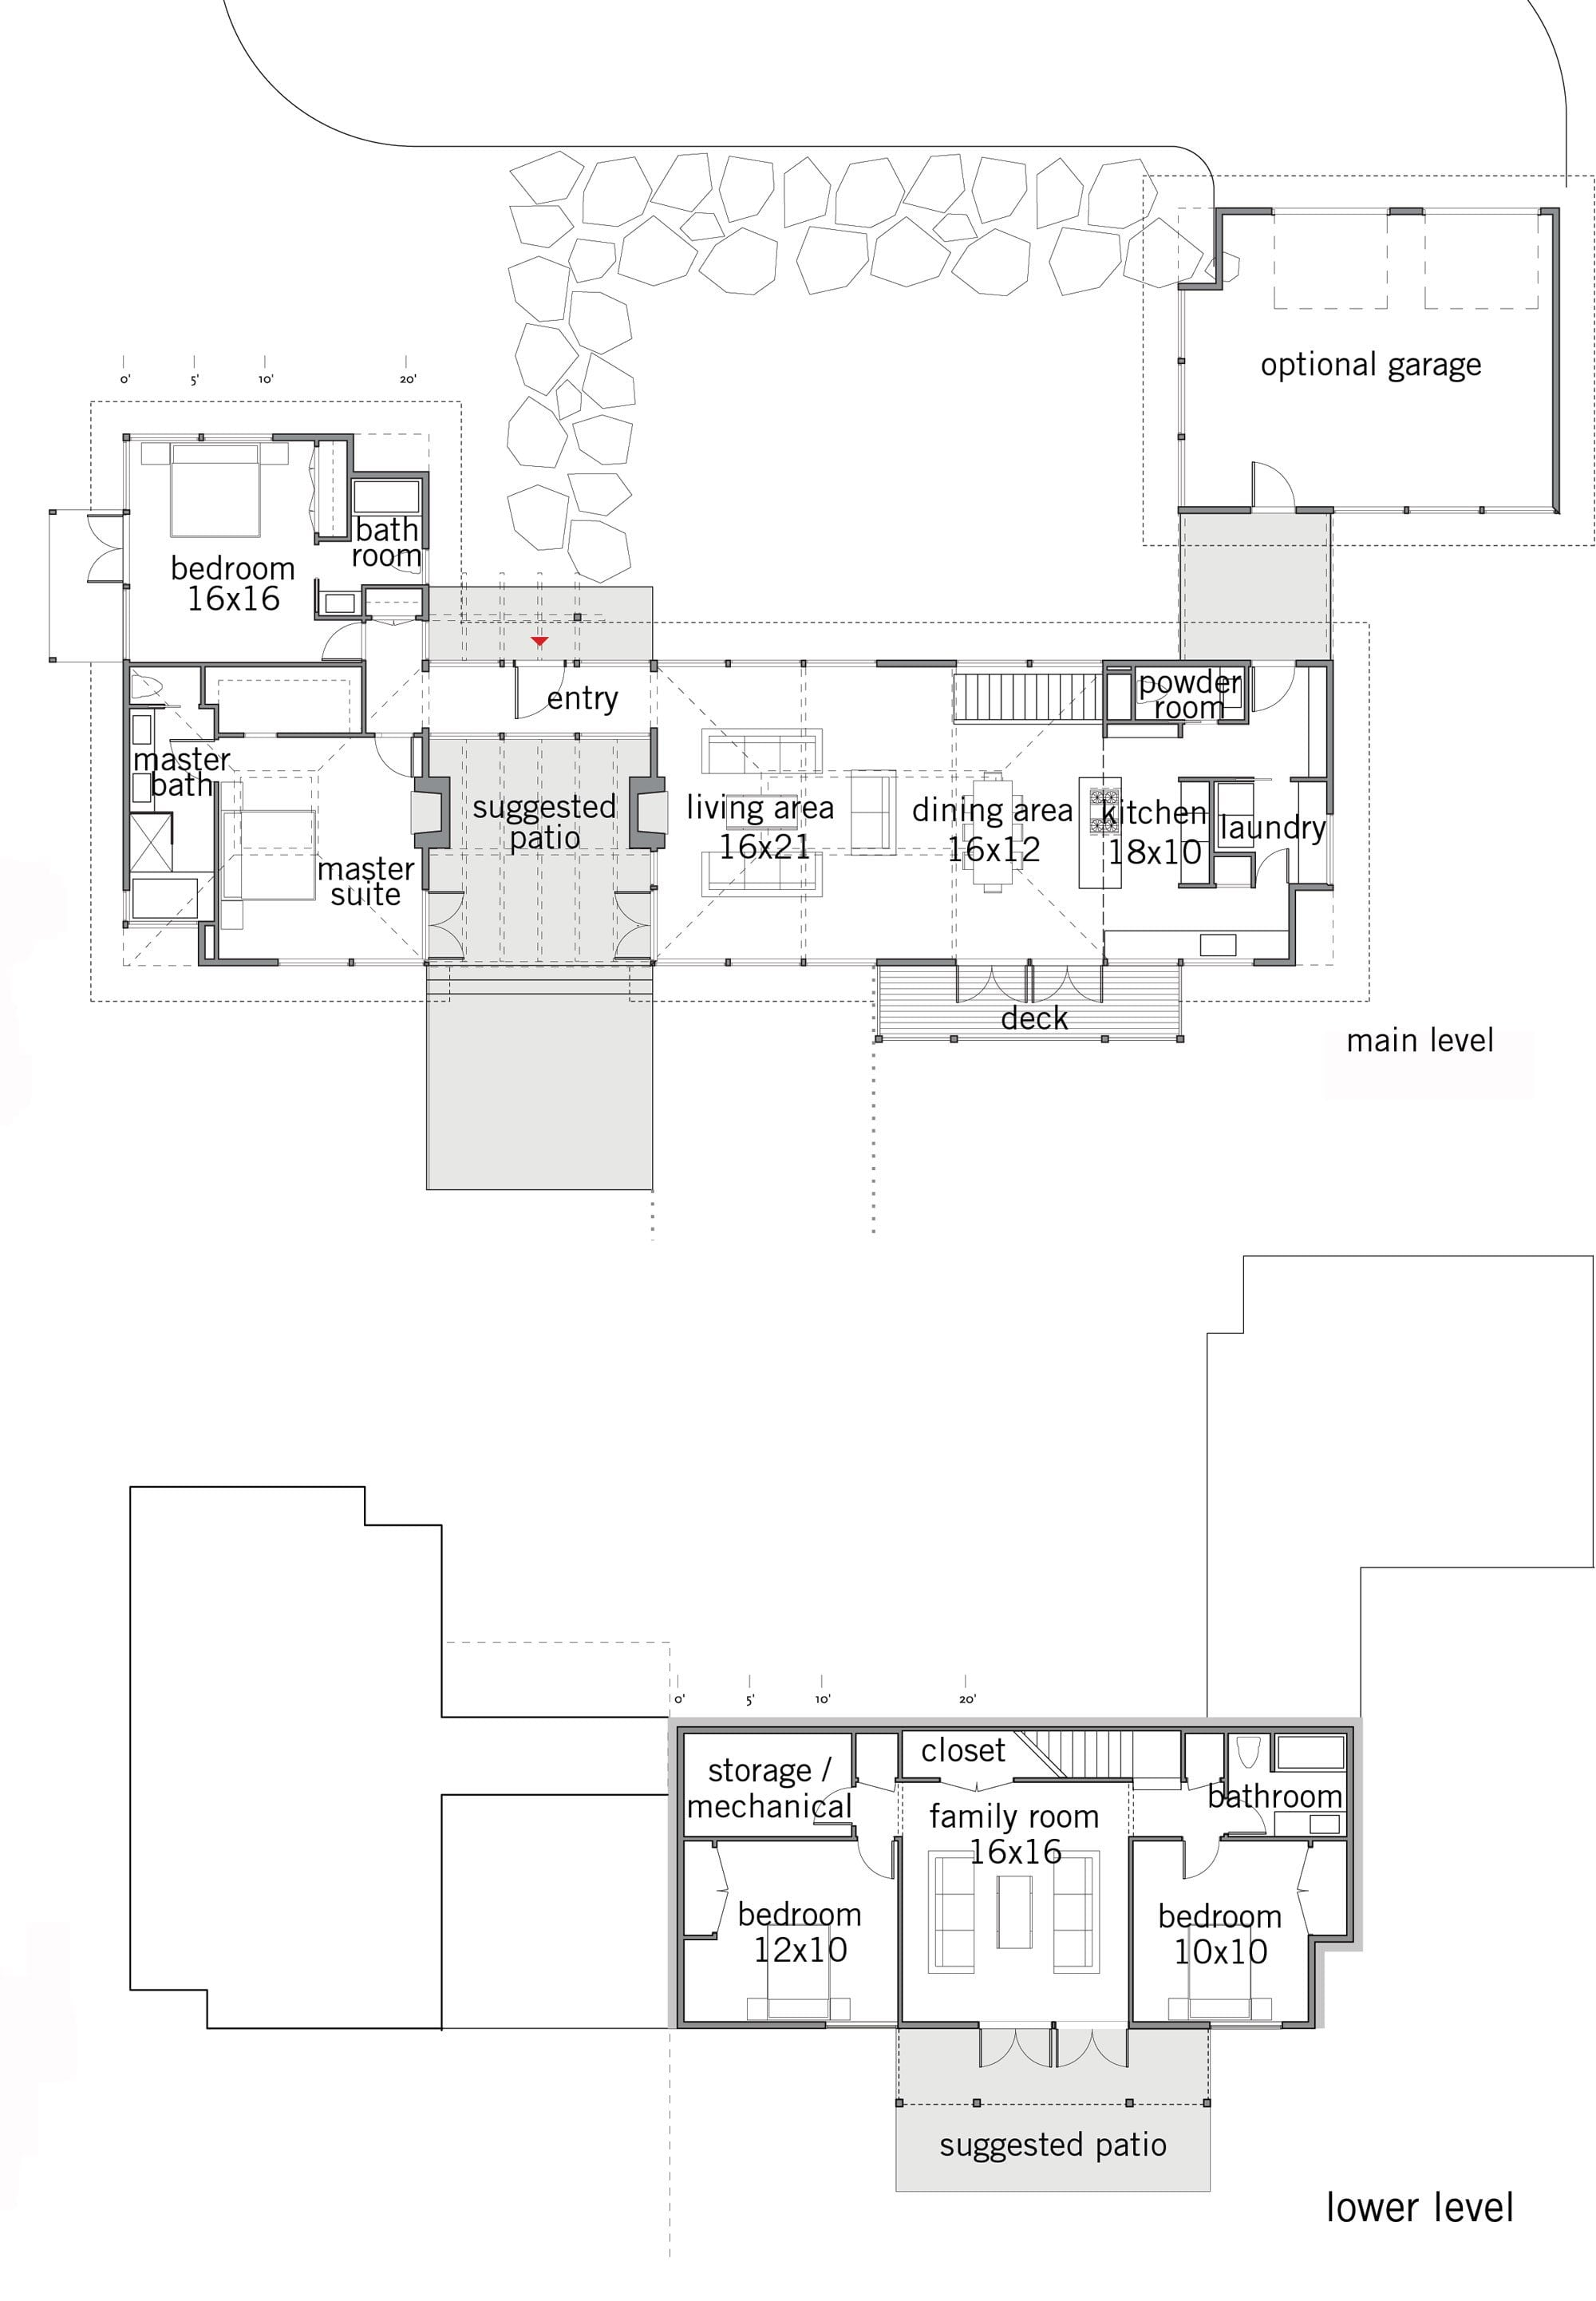 david vandervort 2790 home design floor plan